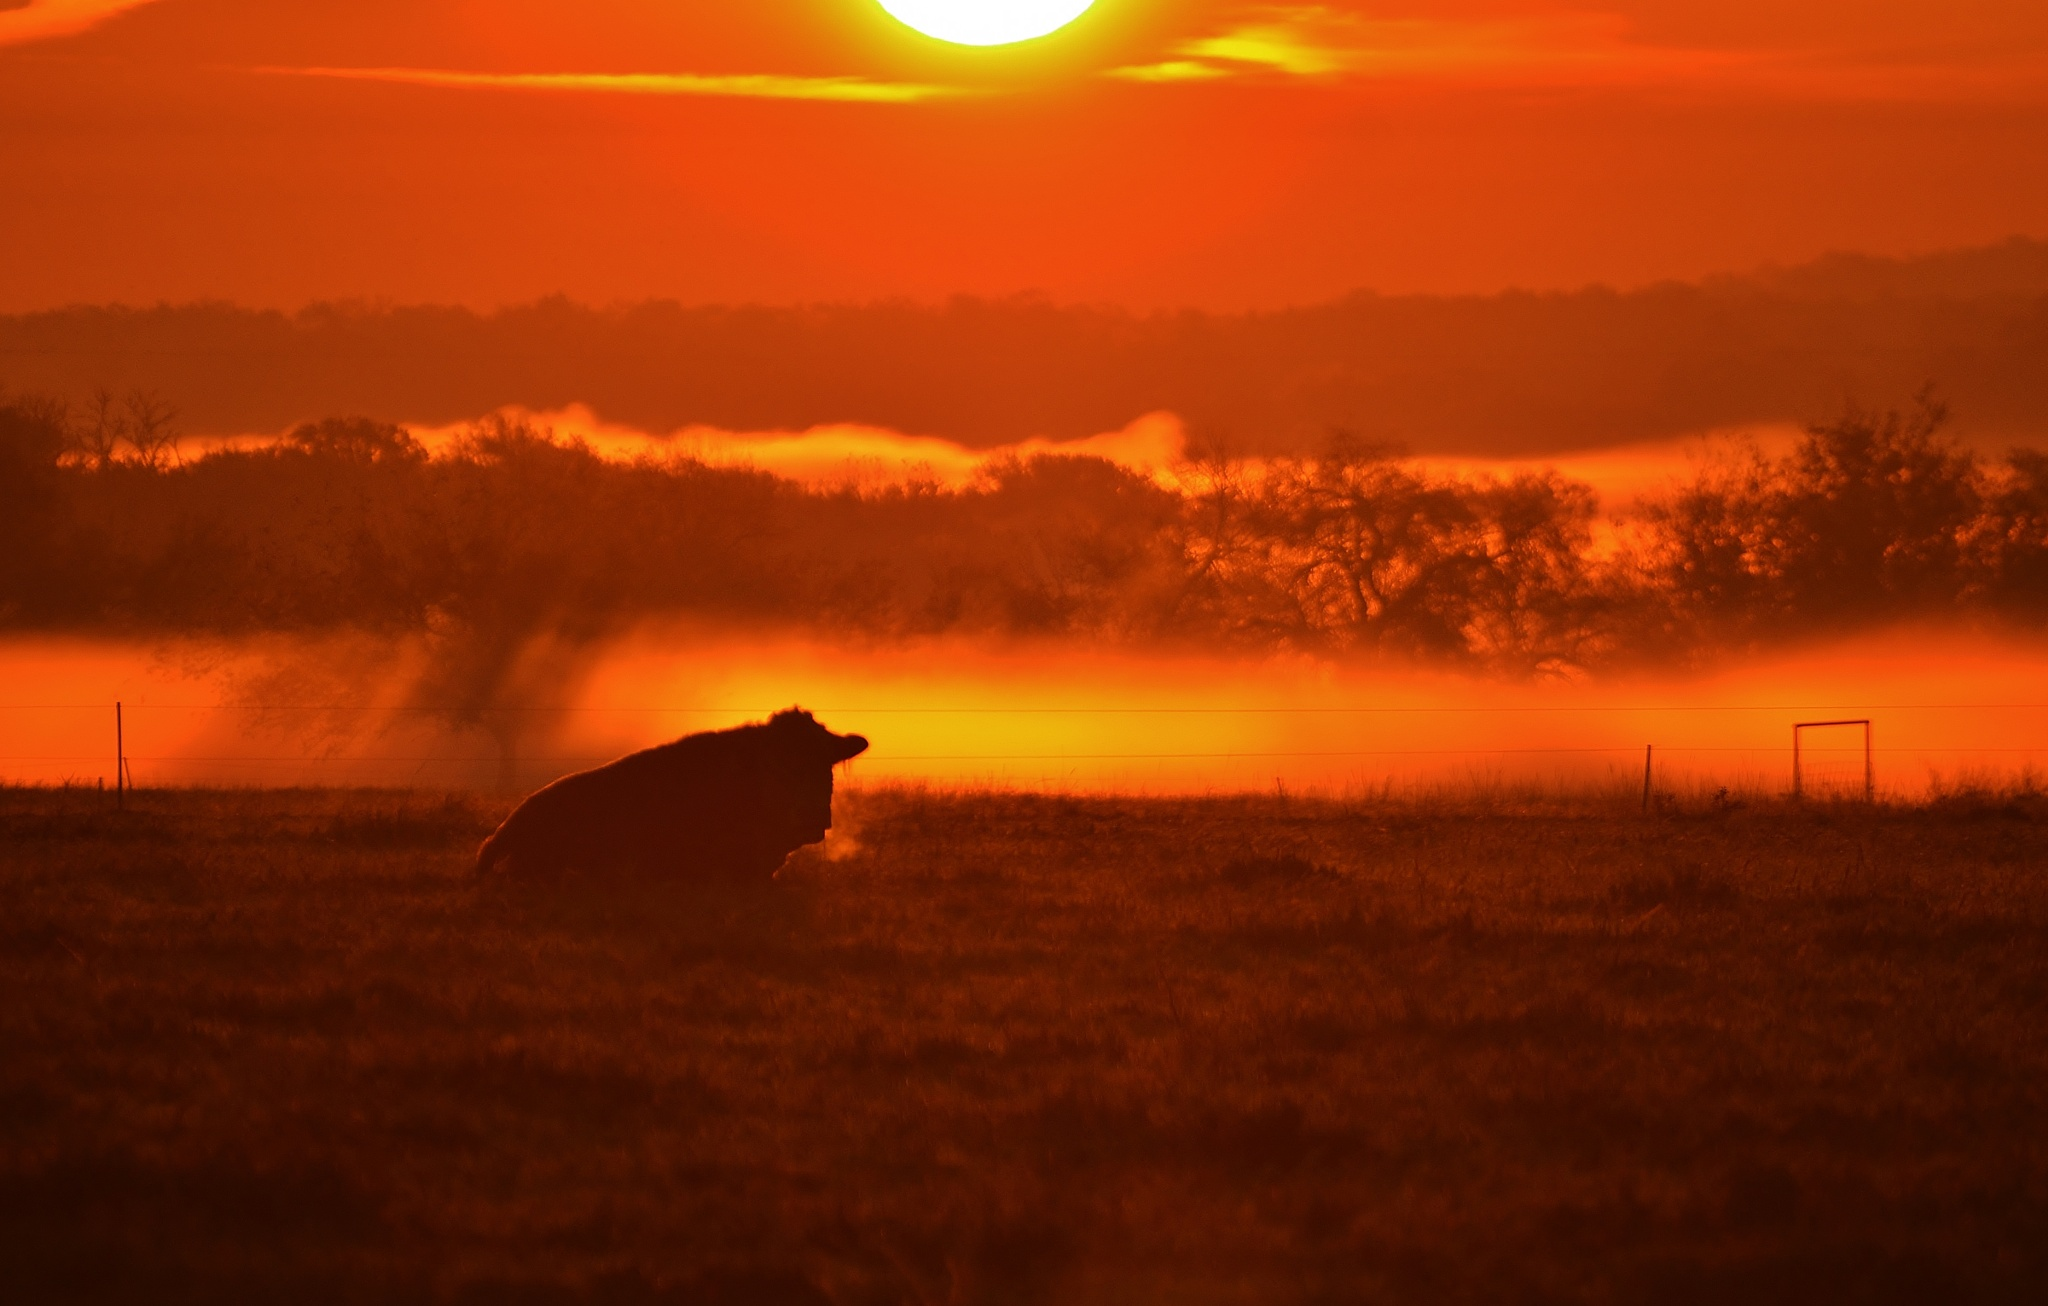 Bull In Frosty Pasture  6312 by Jim Suter